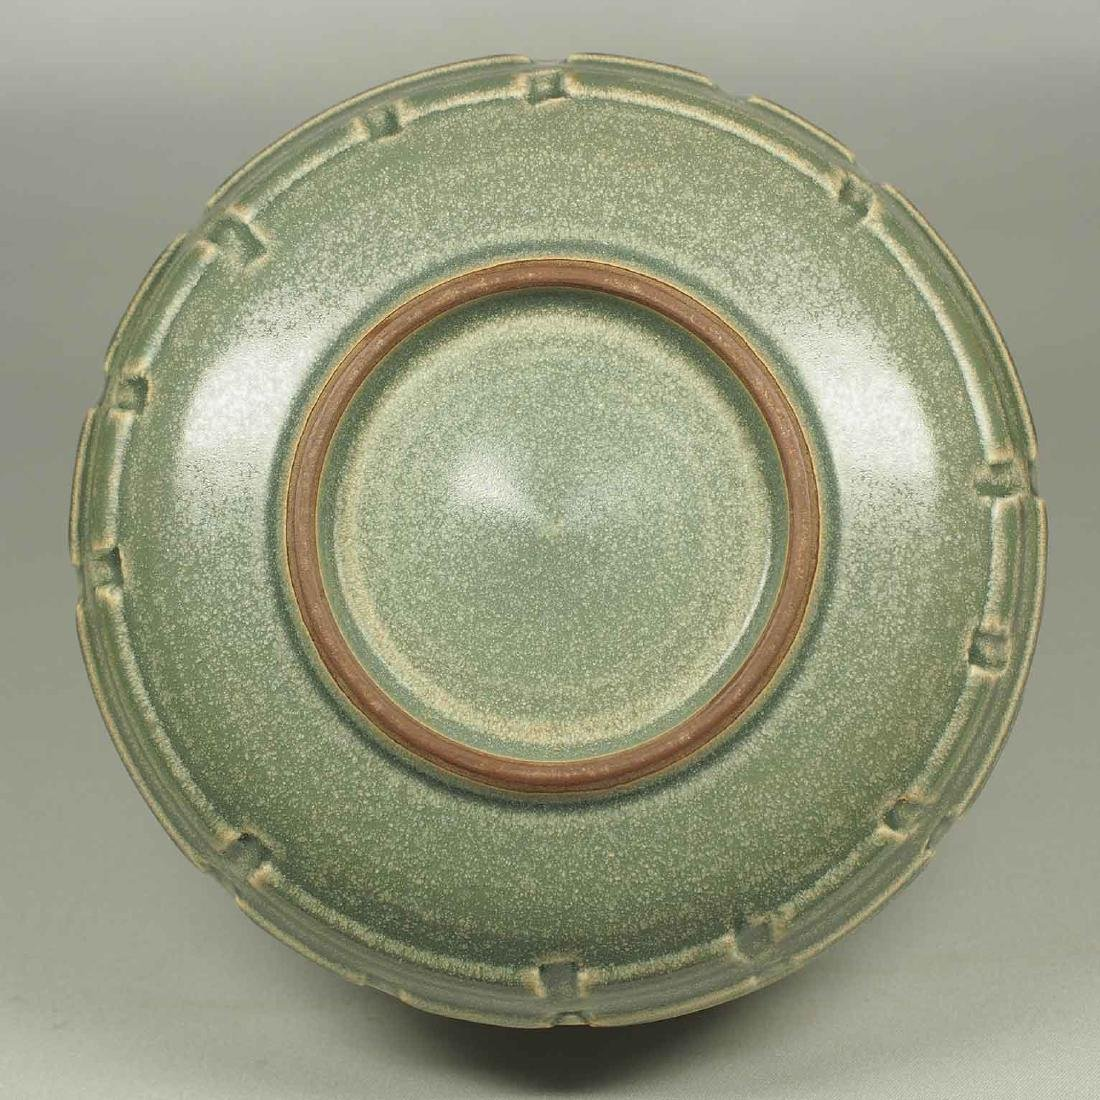 Longquan Washer with Molded Trigram, Southern Song - 7